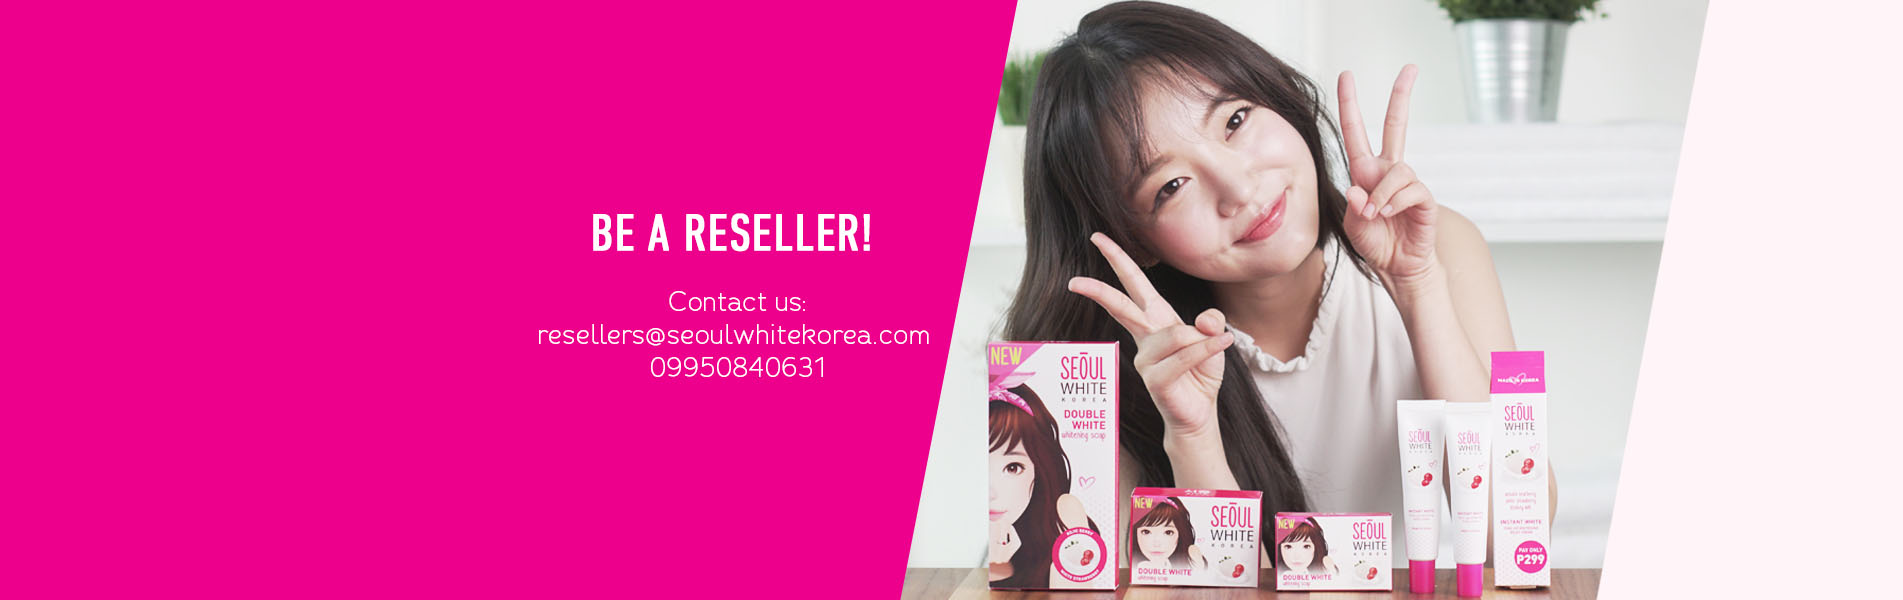 Be-a-Reseller